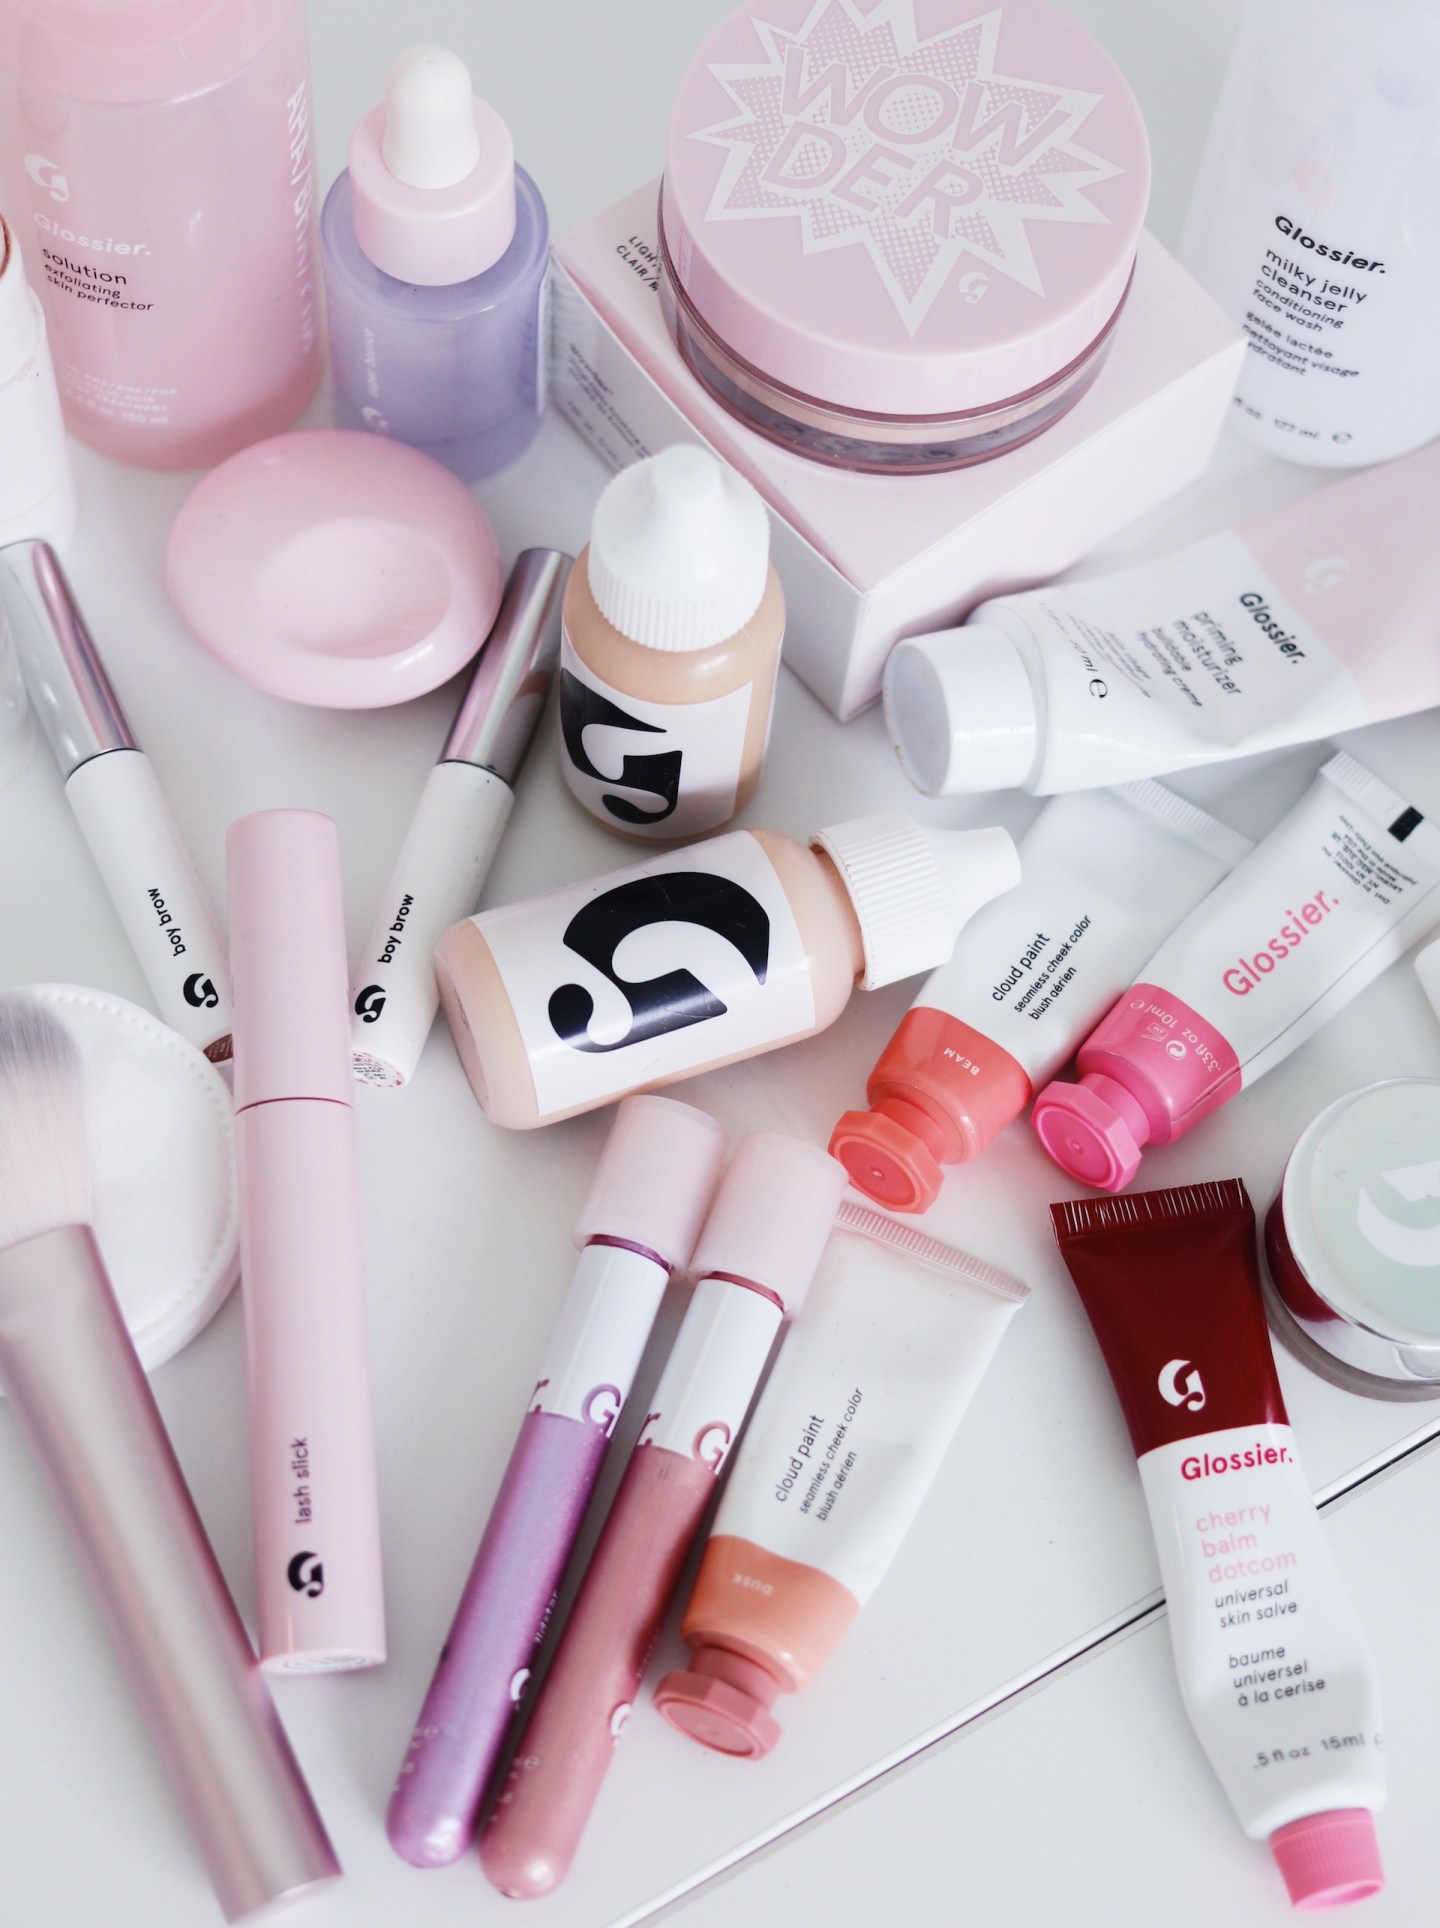 The Glossier Beauty Bible